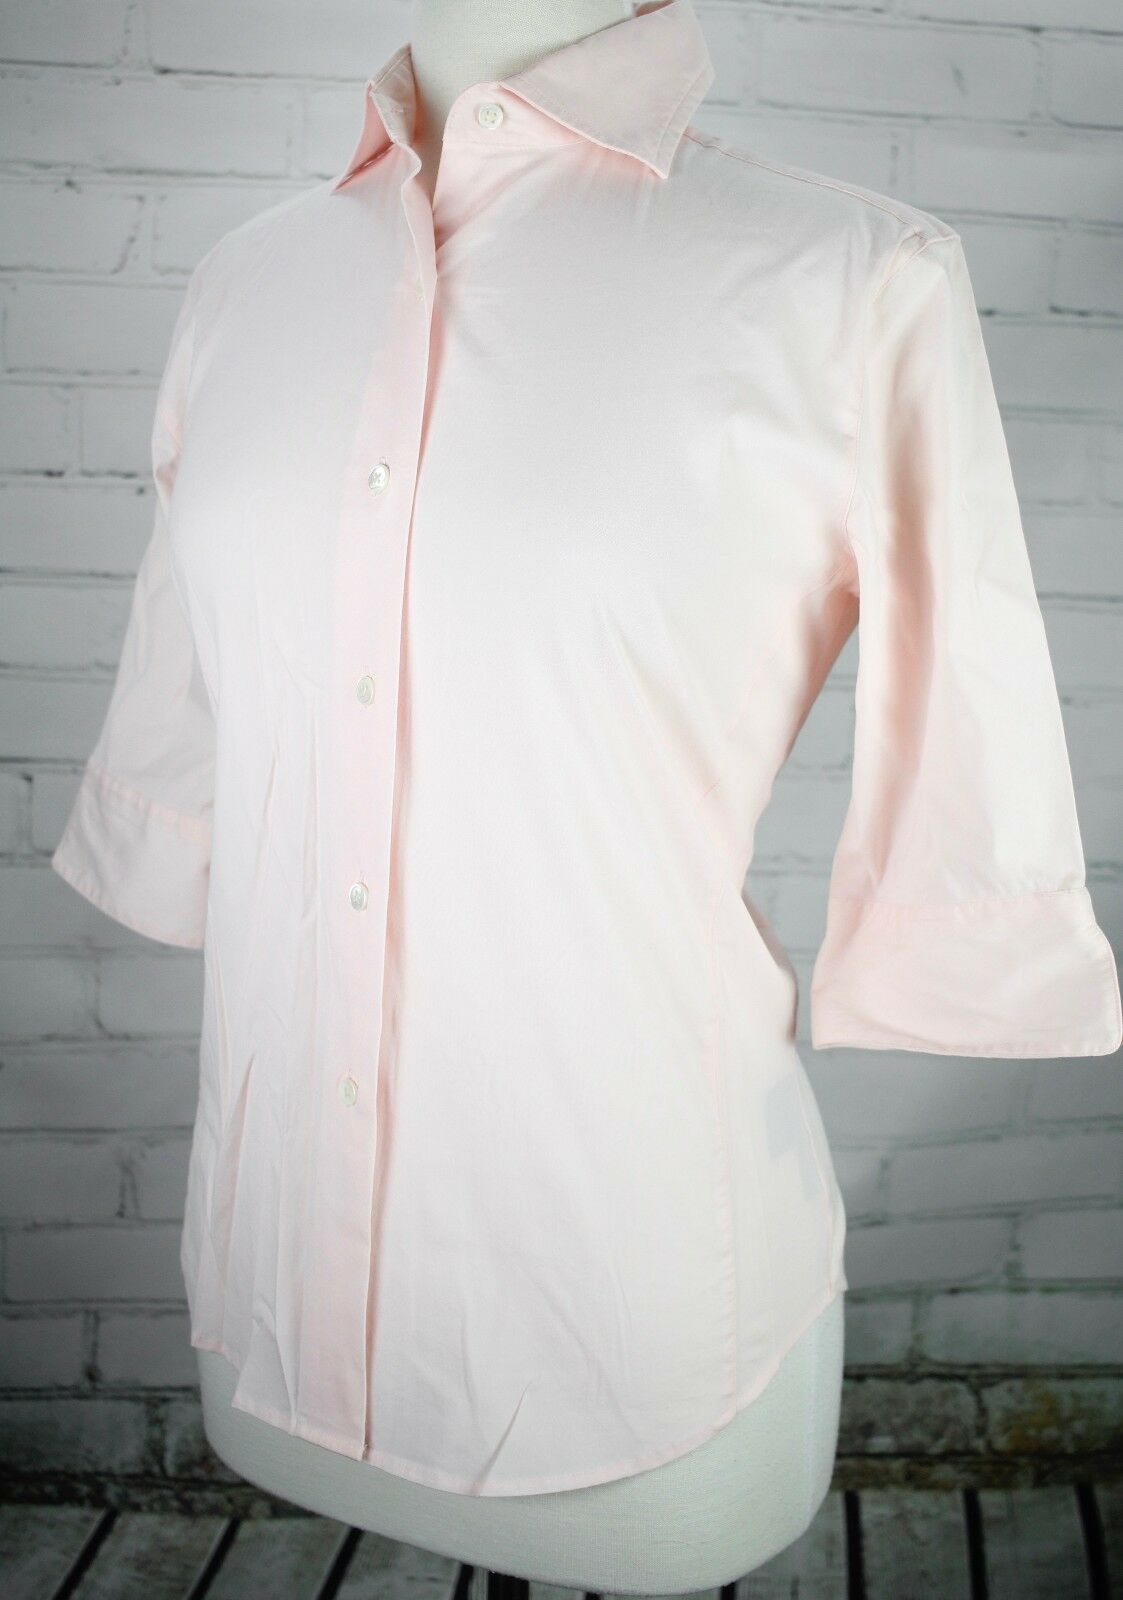 F. by Faconnable Button Down Career Shirt Pale Pink Women's S Cotton Stretch